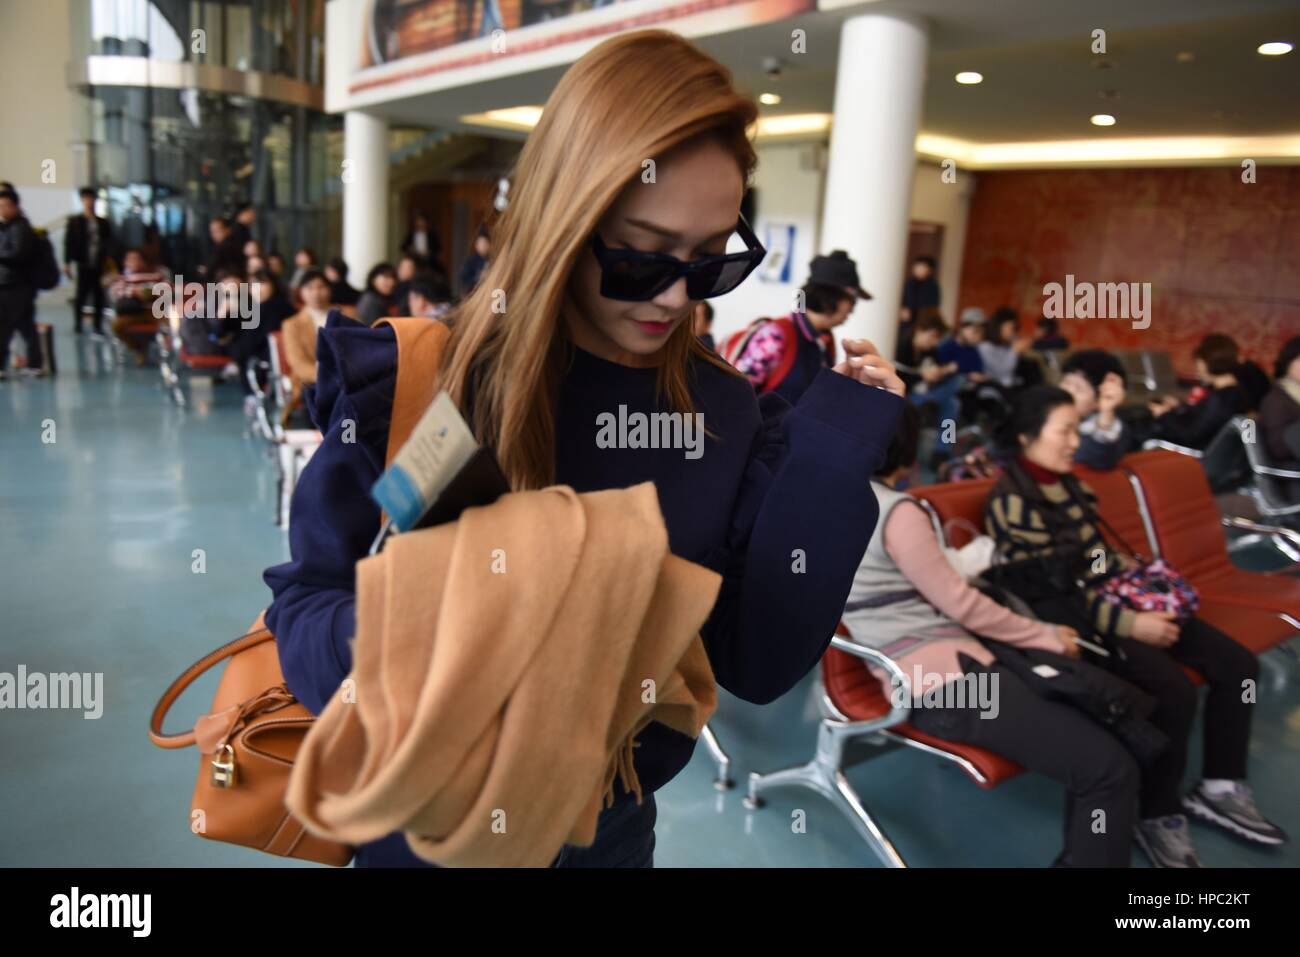 Jessica Jung Photos & Jessica Jung Images - Alamy